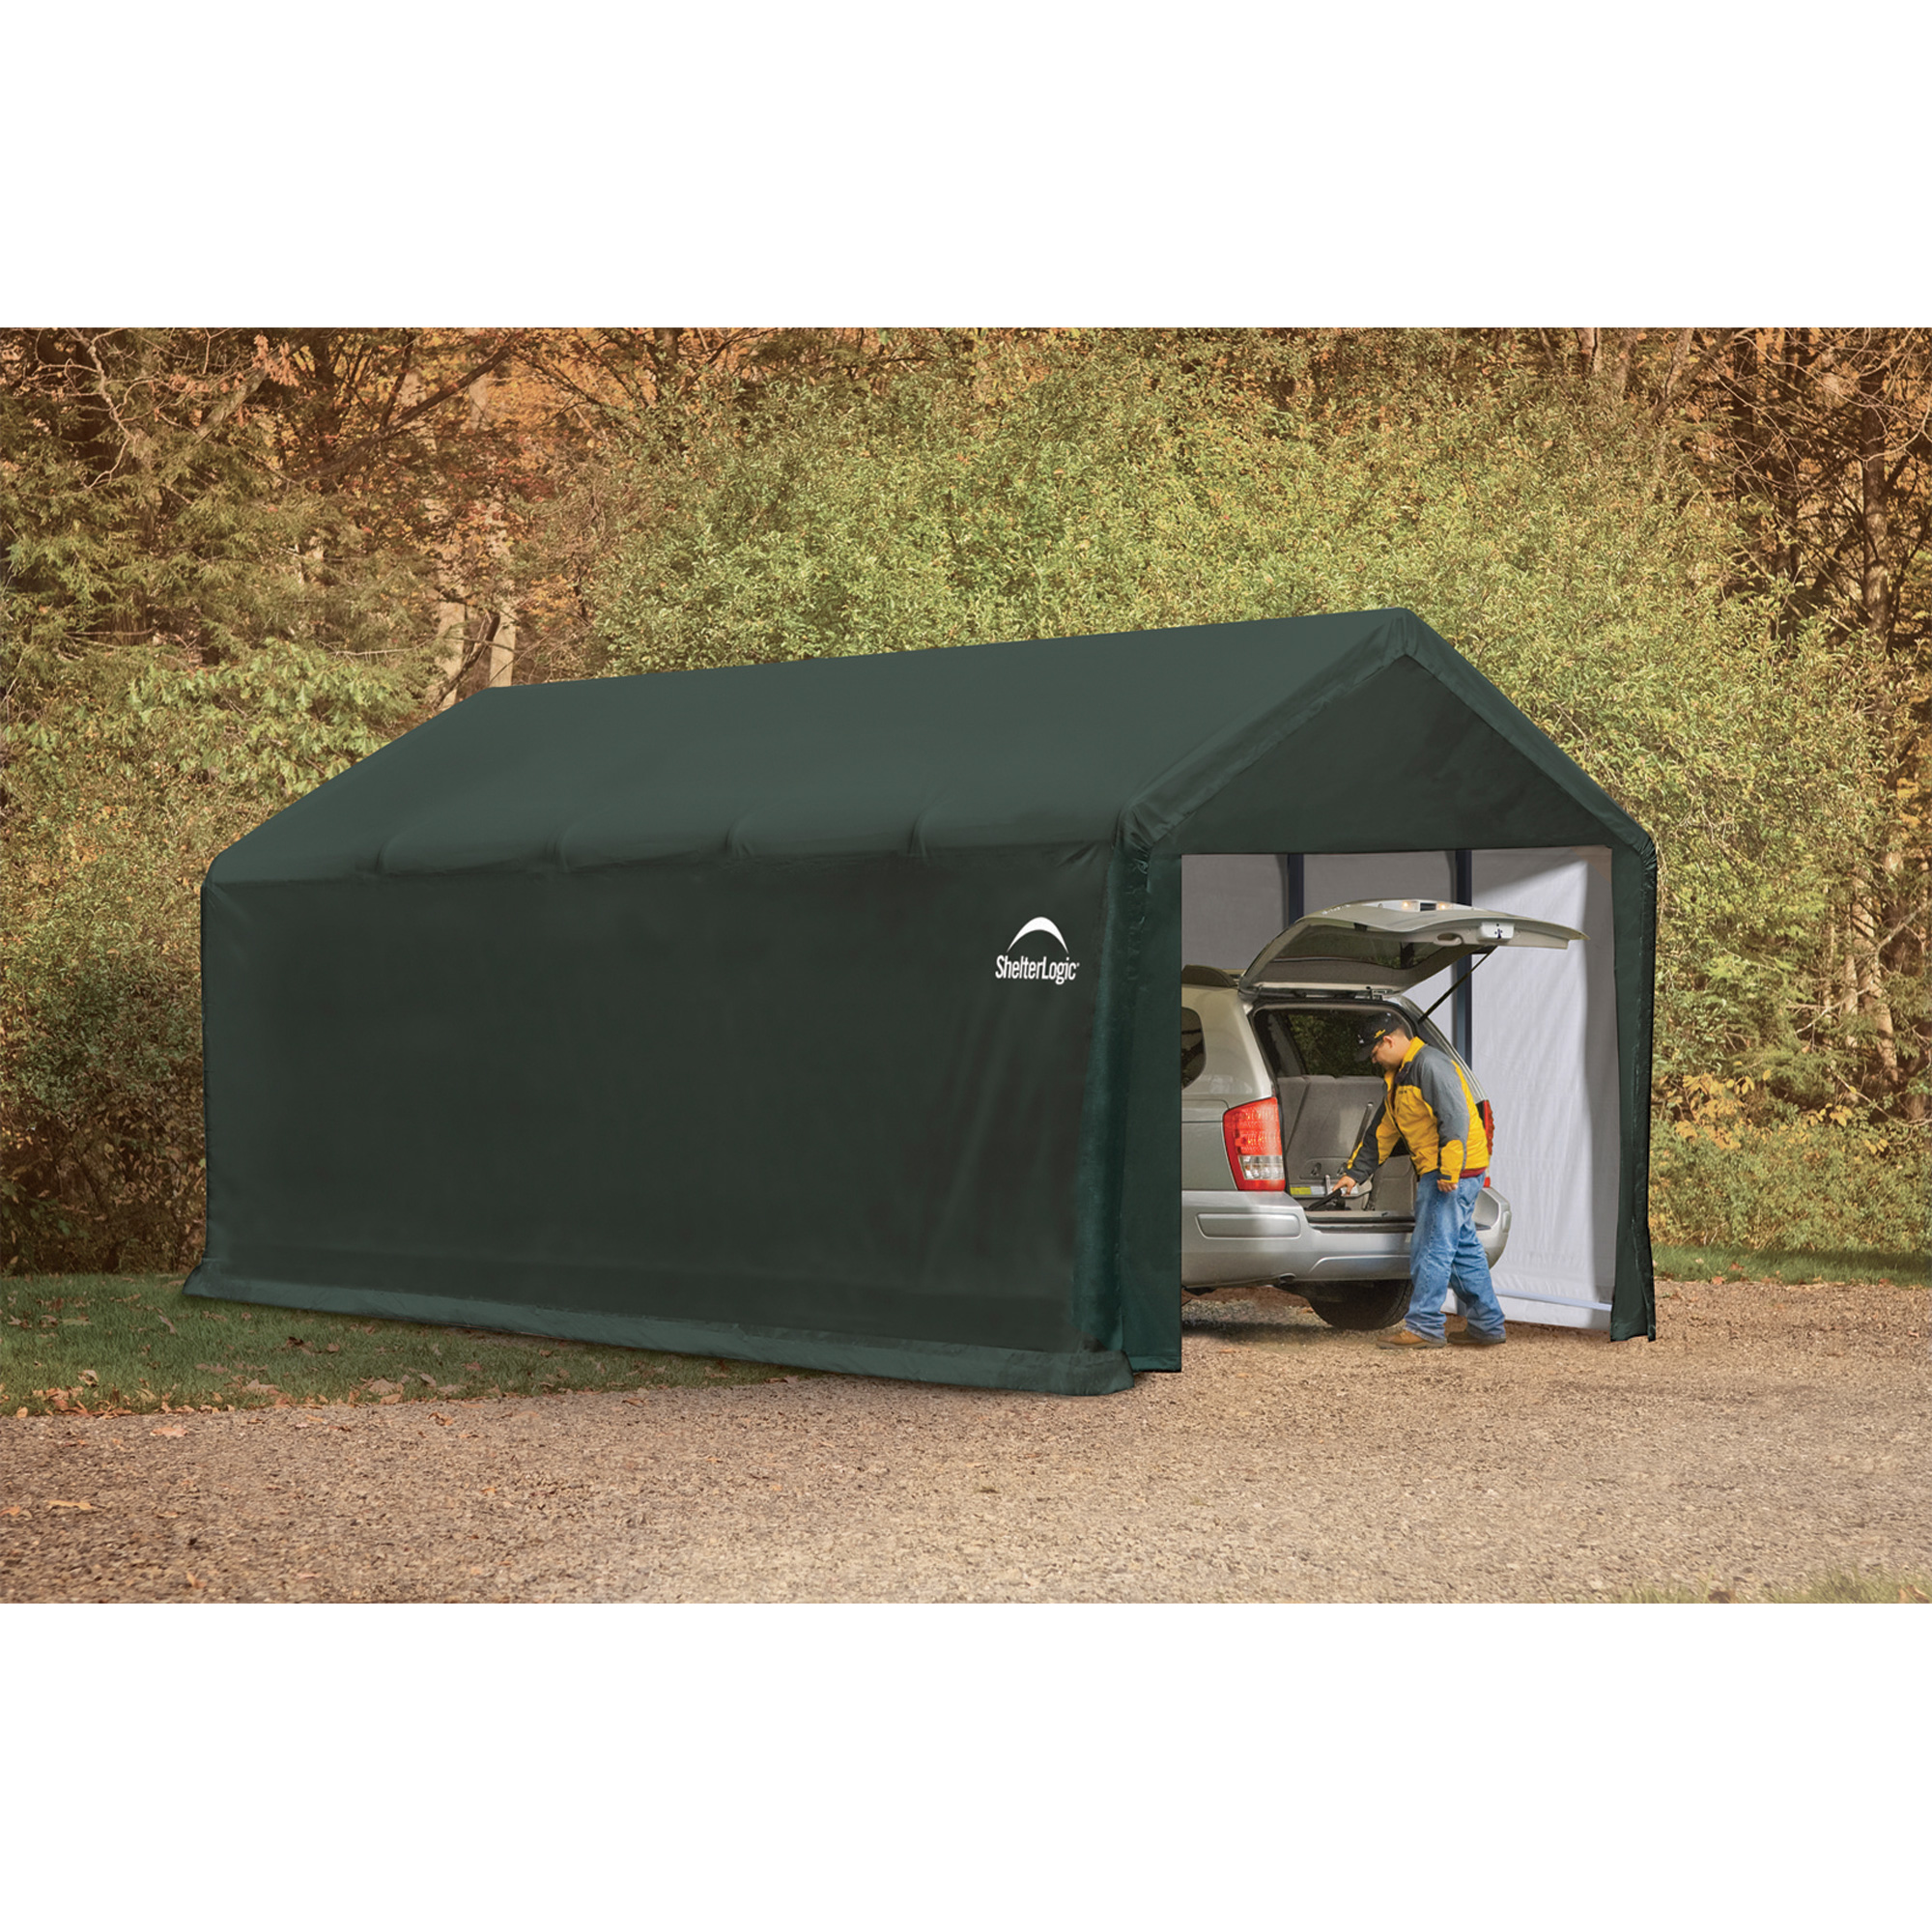 Heavy Equipment Shelters : Shelterlogic sheltertube heavy duty storage shelter — ft